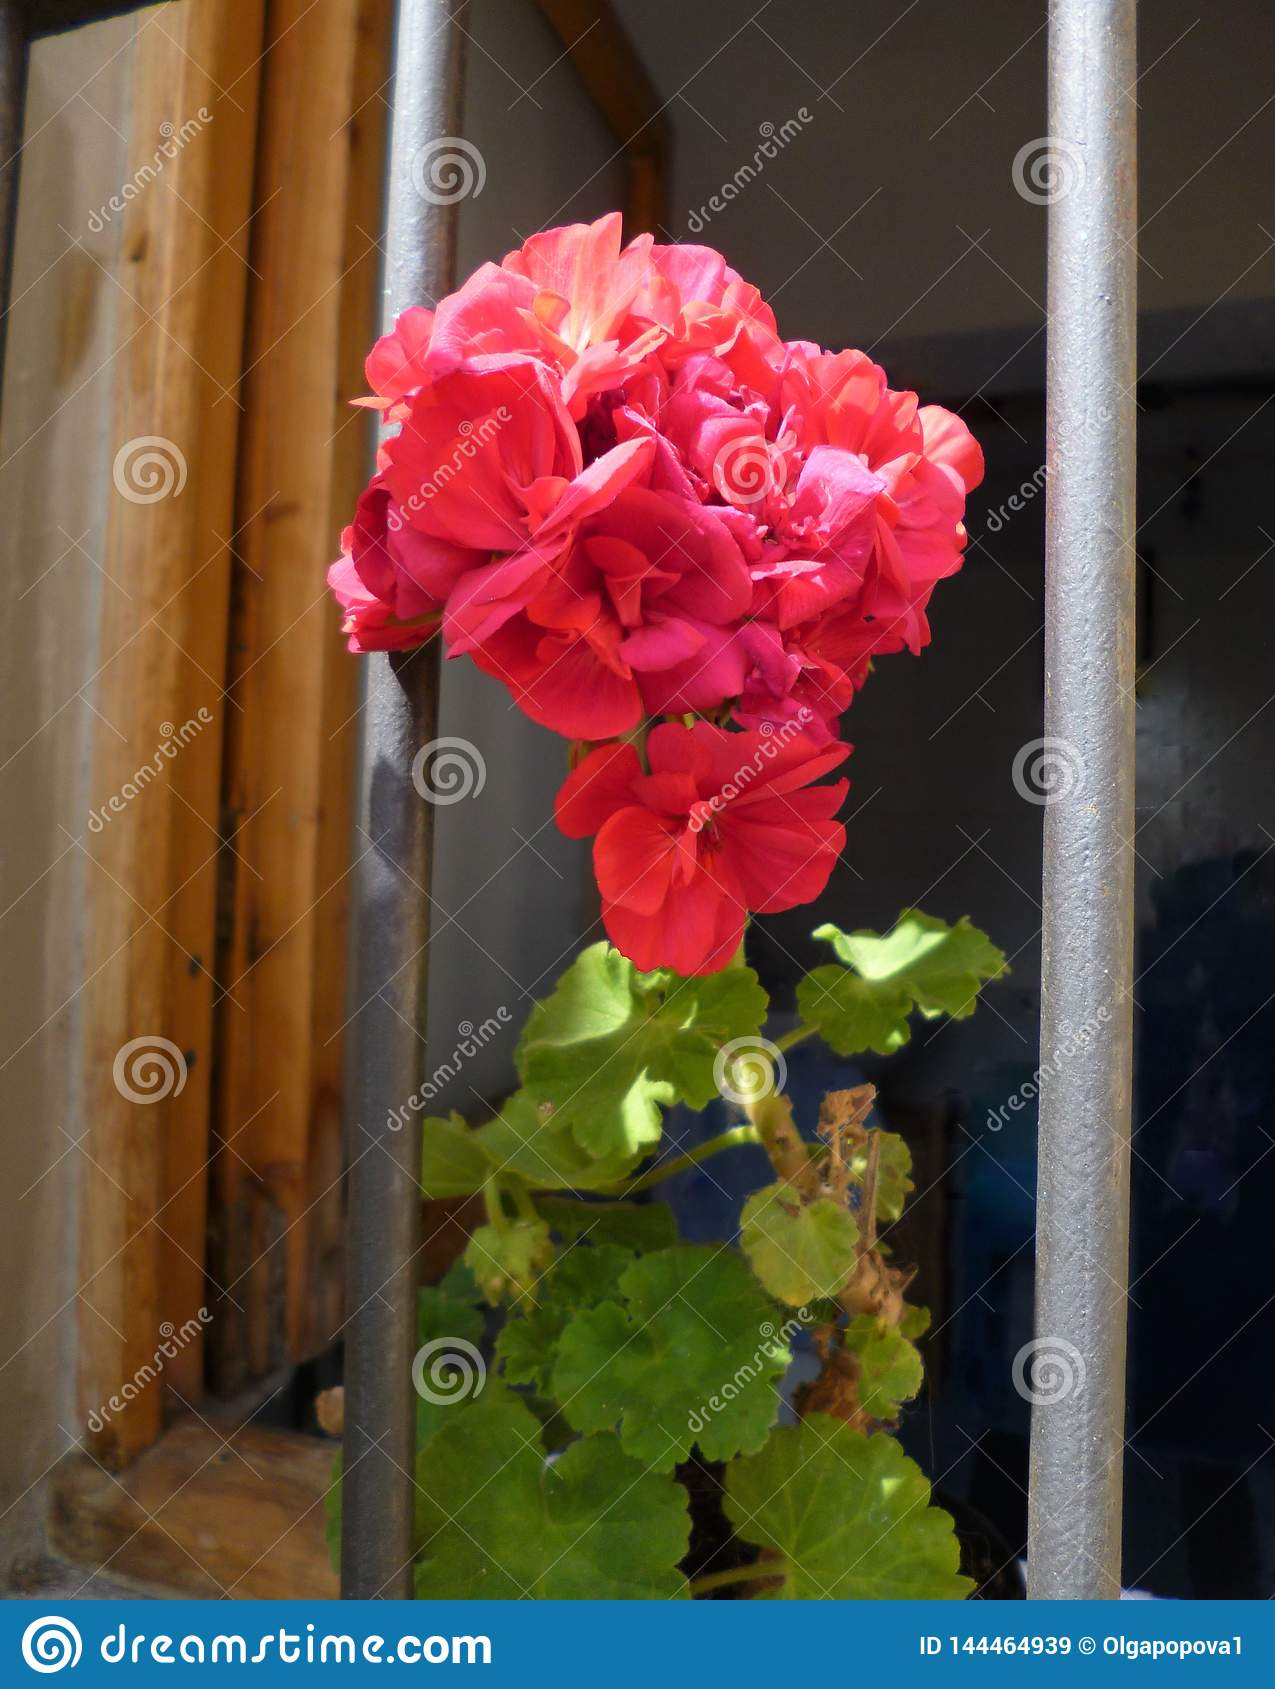 Beautiful red geranium flowers in the window. Close-up